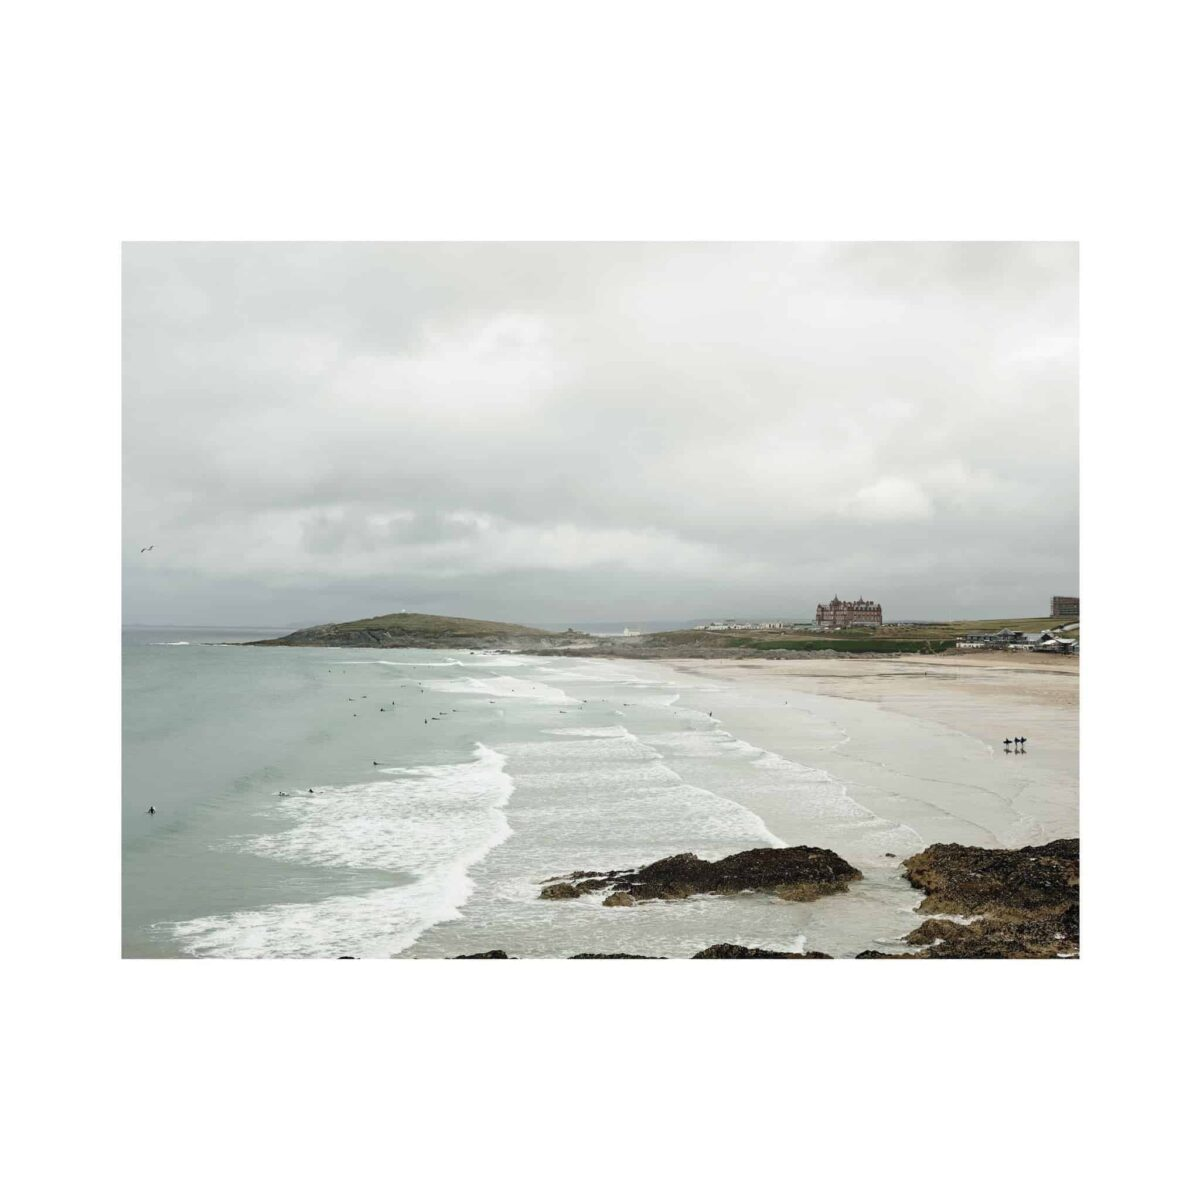 fistral-bay-a1-print-only-tom-shaw-another-country_7e407bd1-a3eb-4b59-af04-bbed25a86c0c.jpg